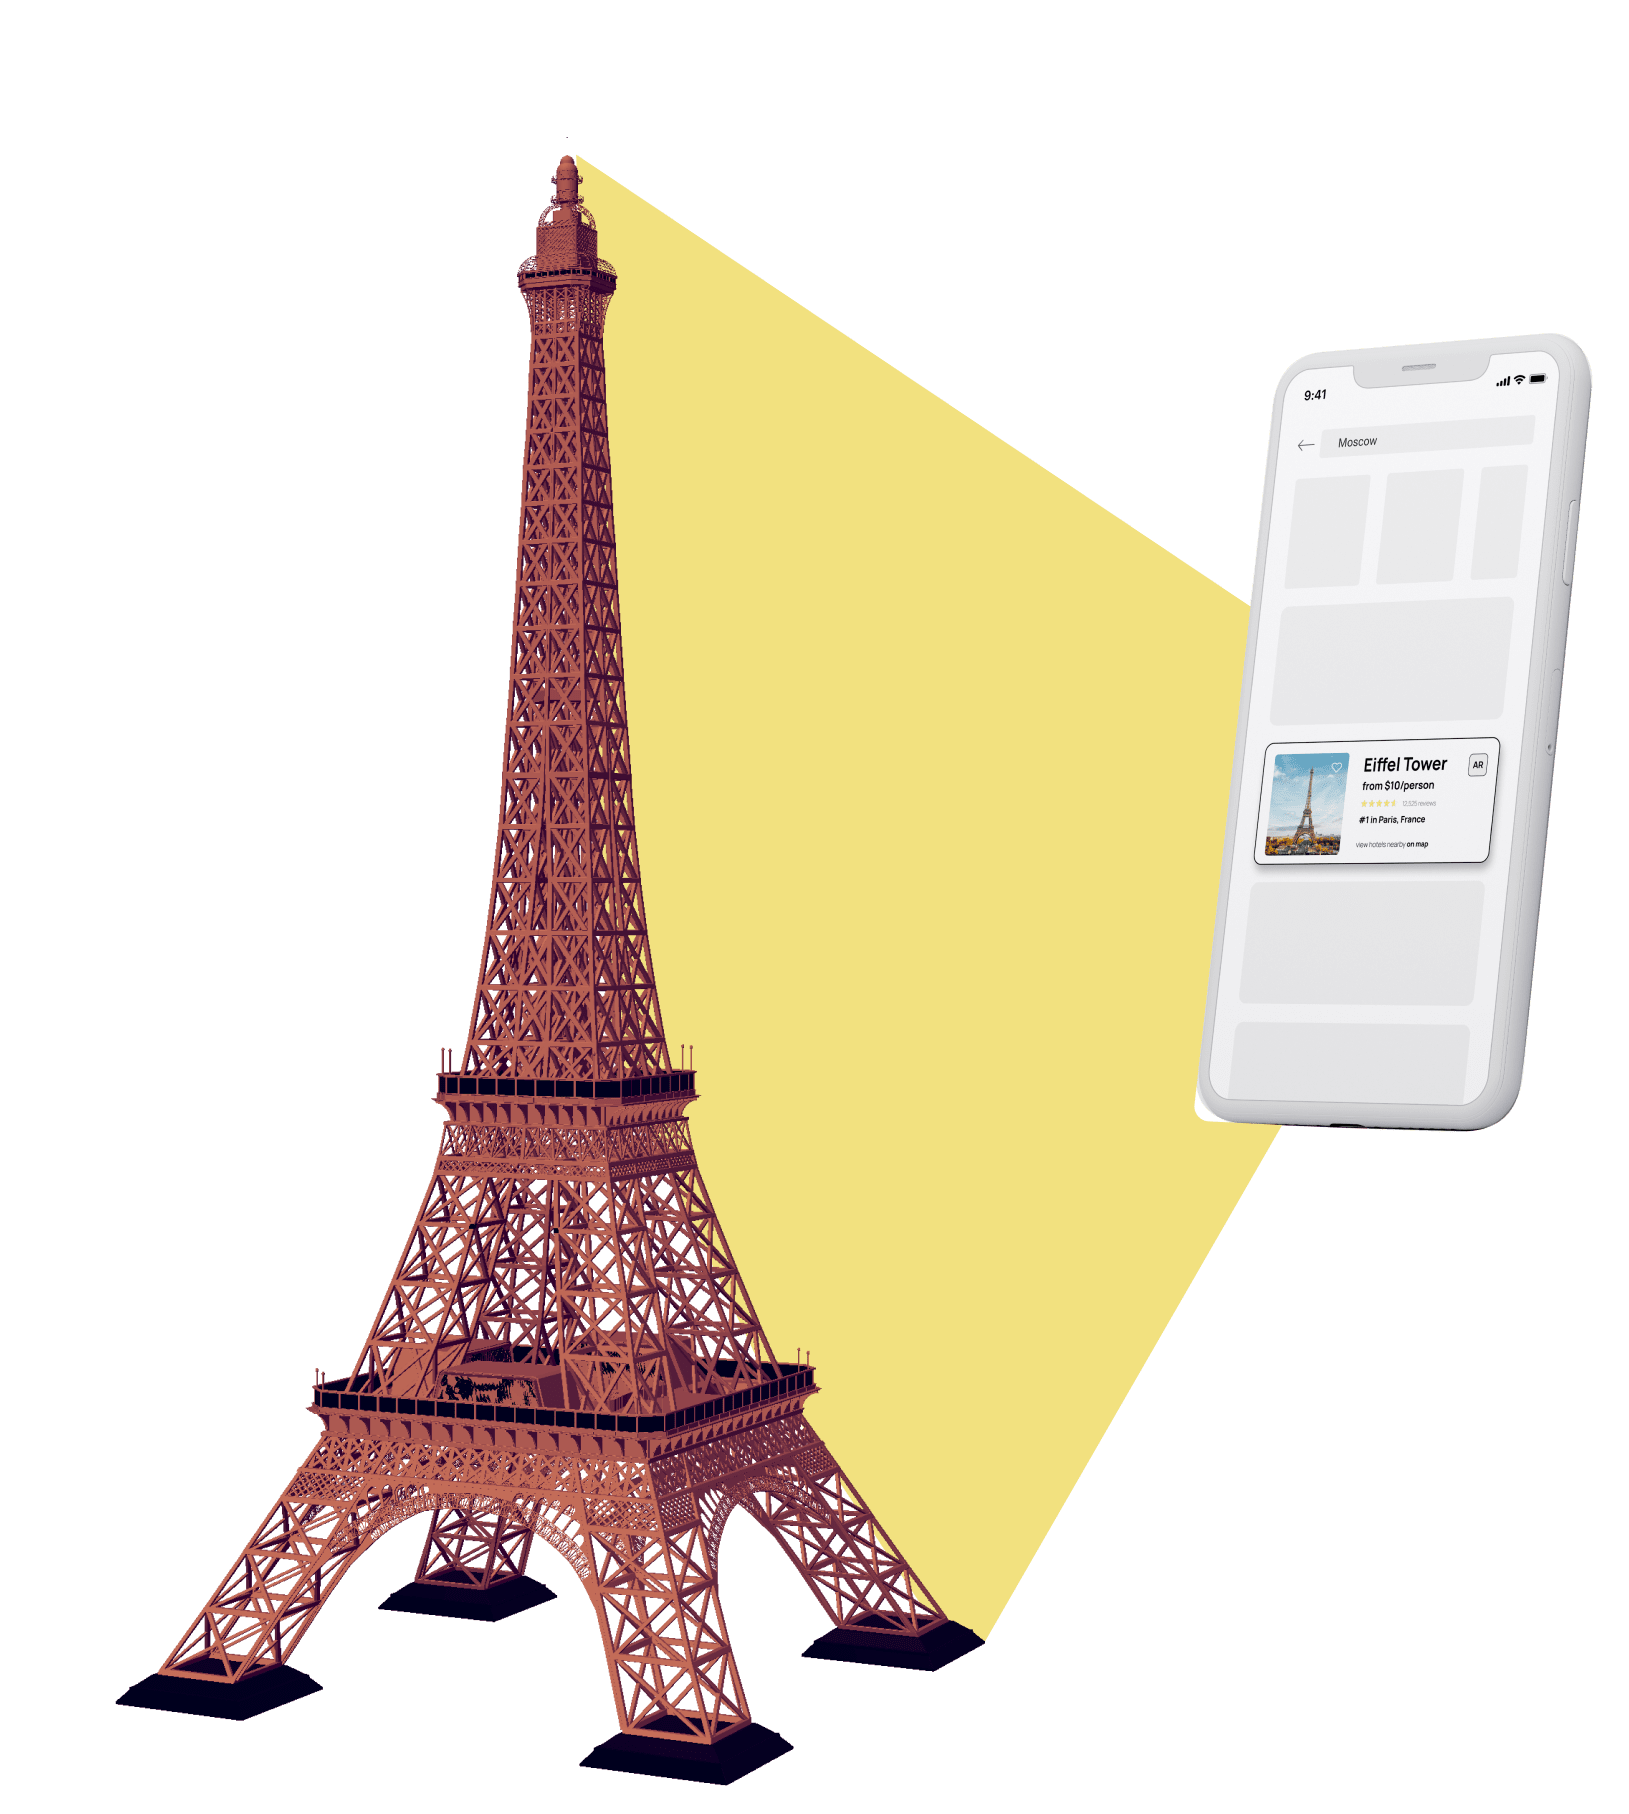 Example of augmented reality for tourism app